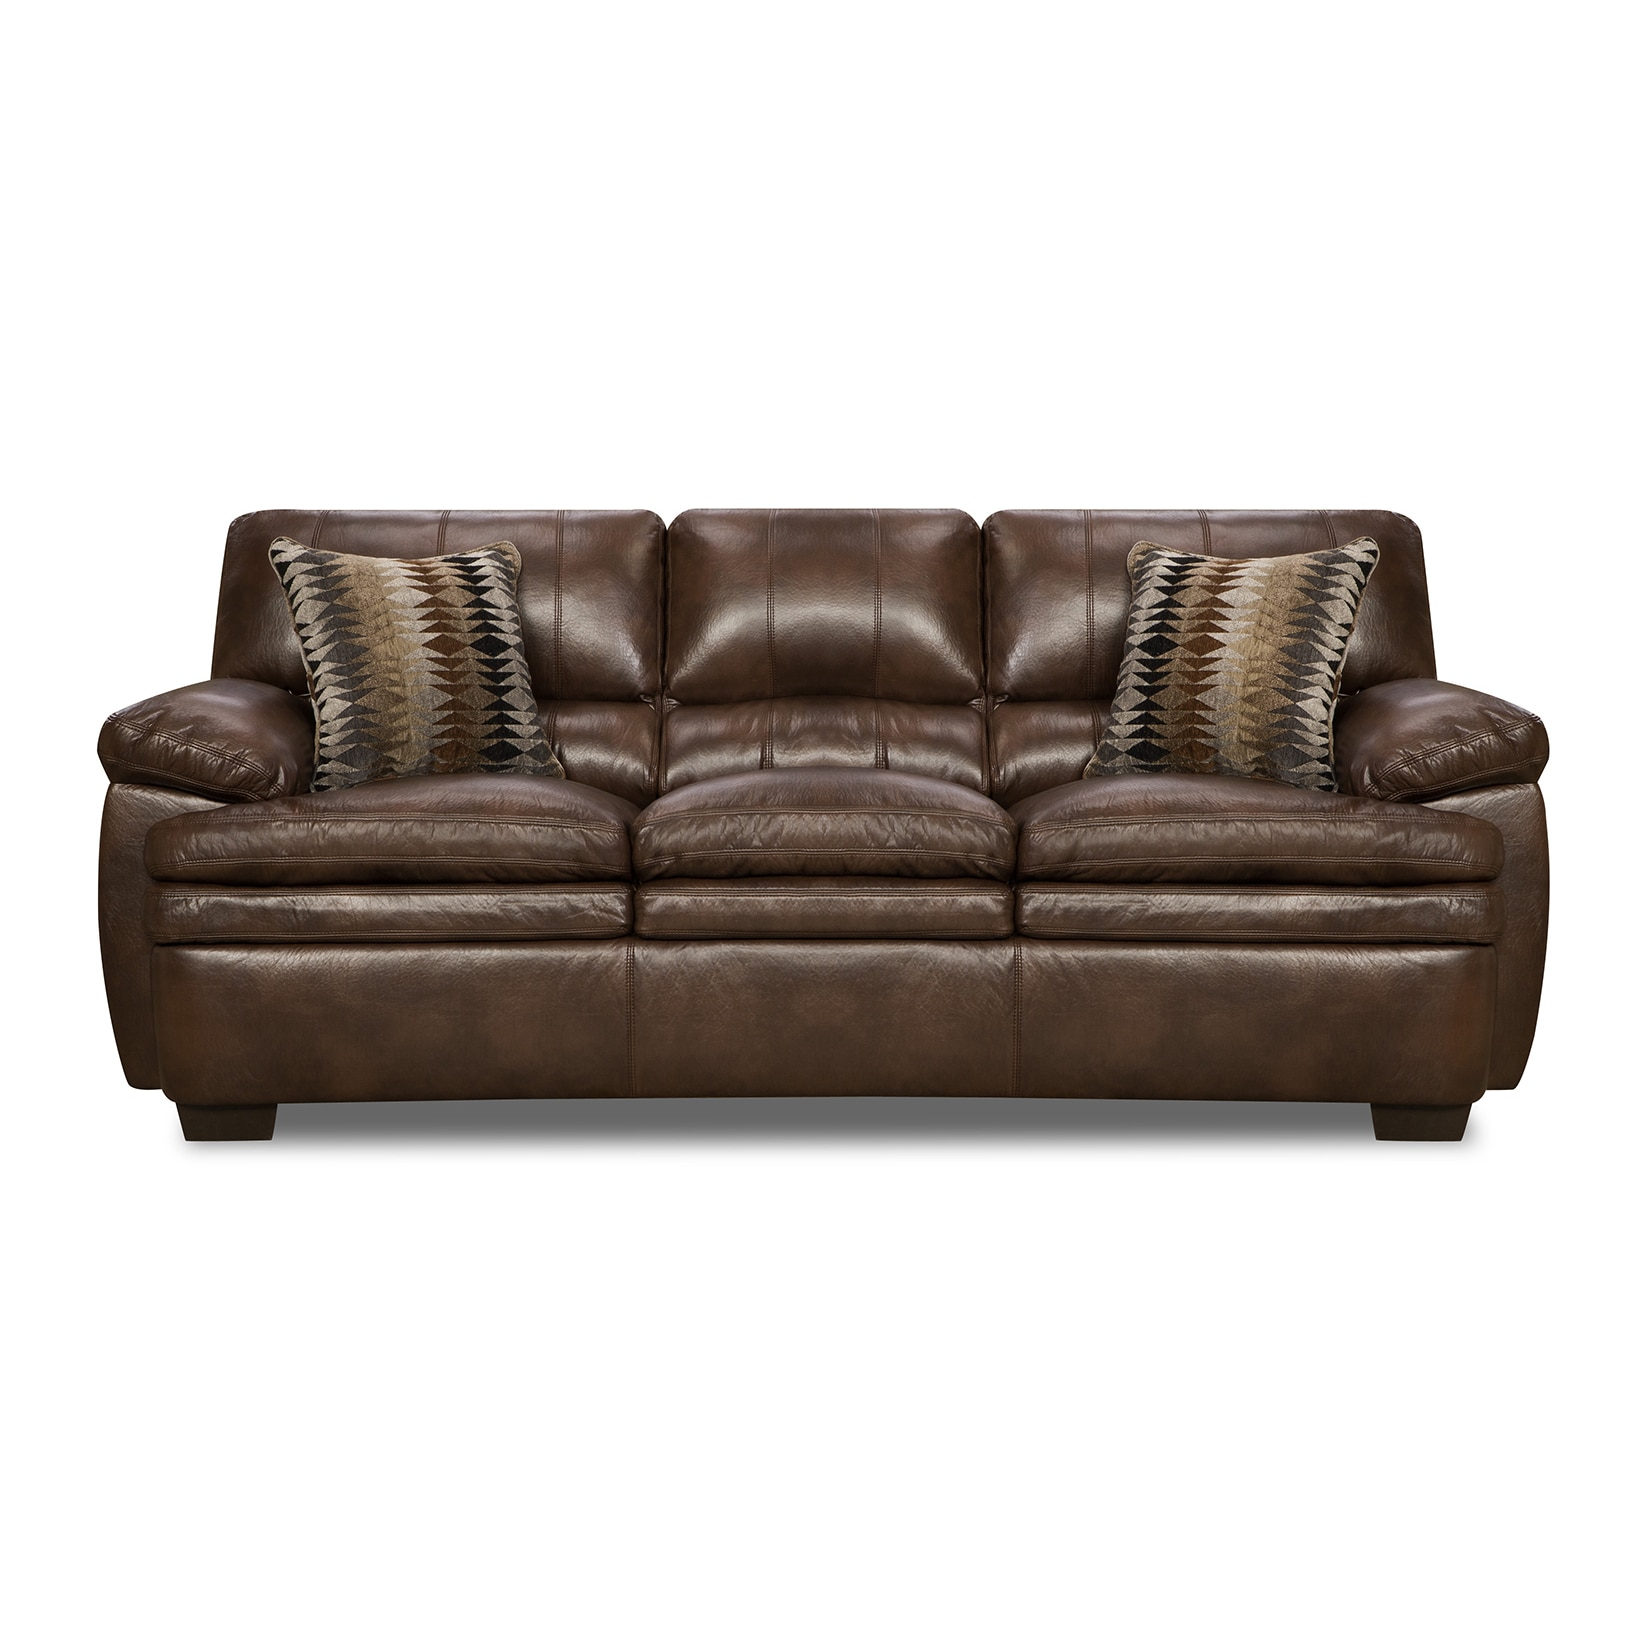 Simmons Upholstery Editor Brown Bonded Leather Sofa (Brown)